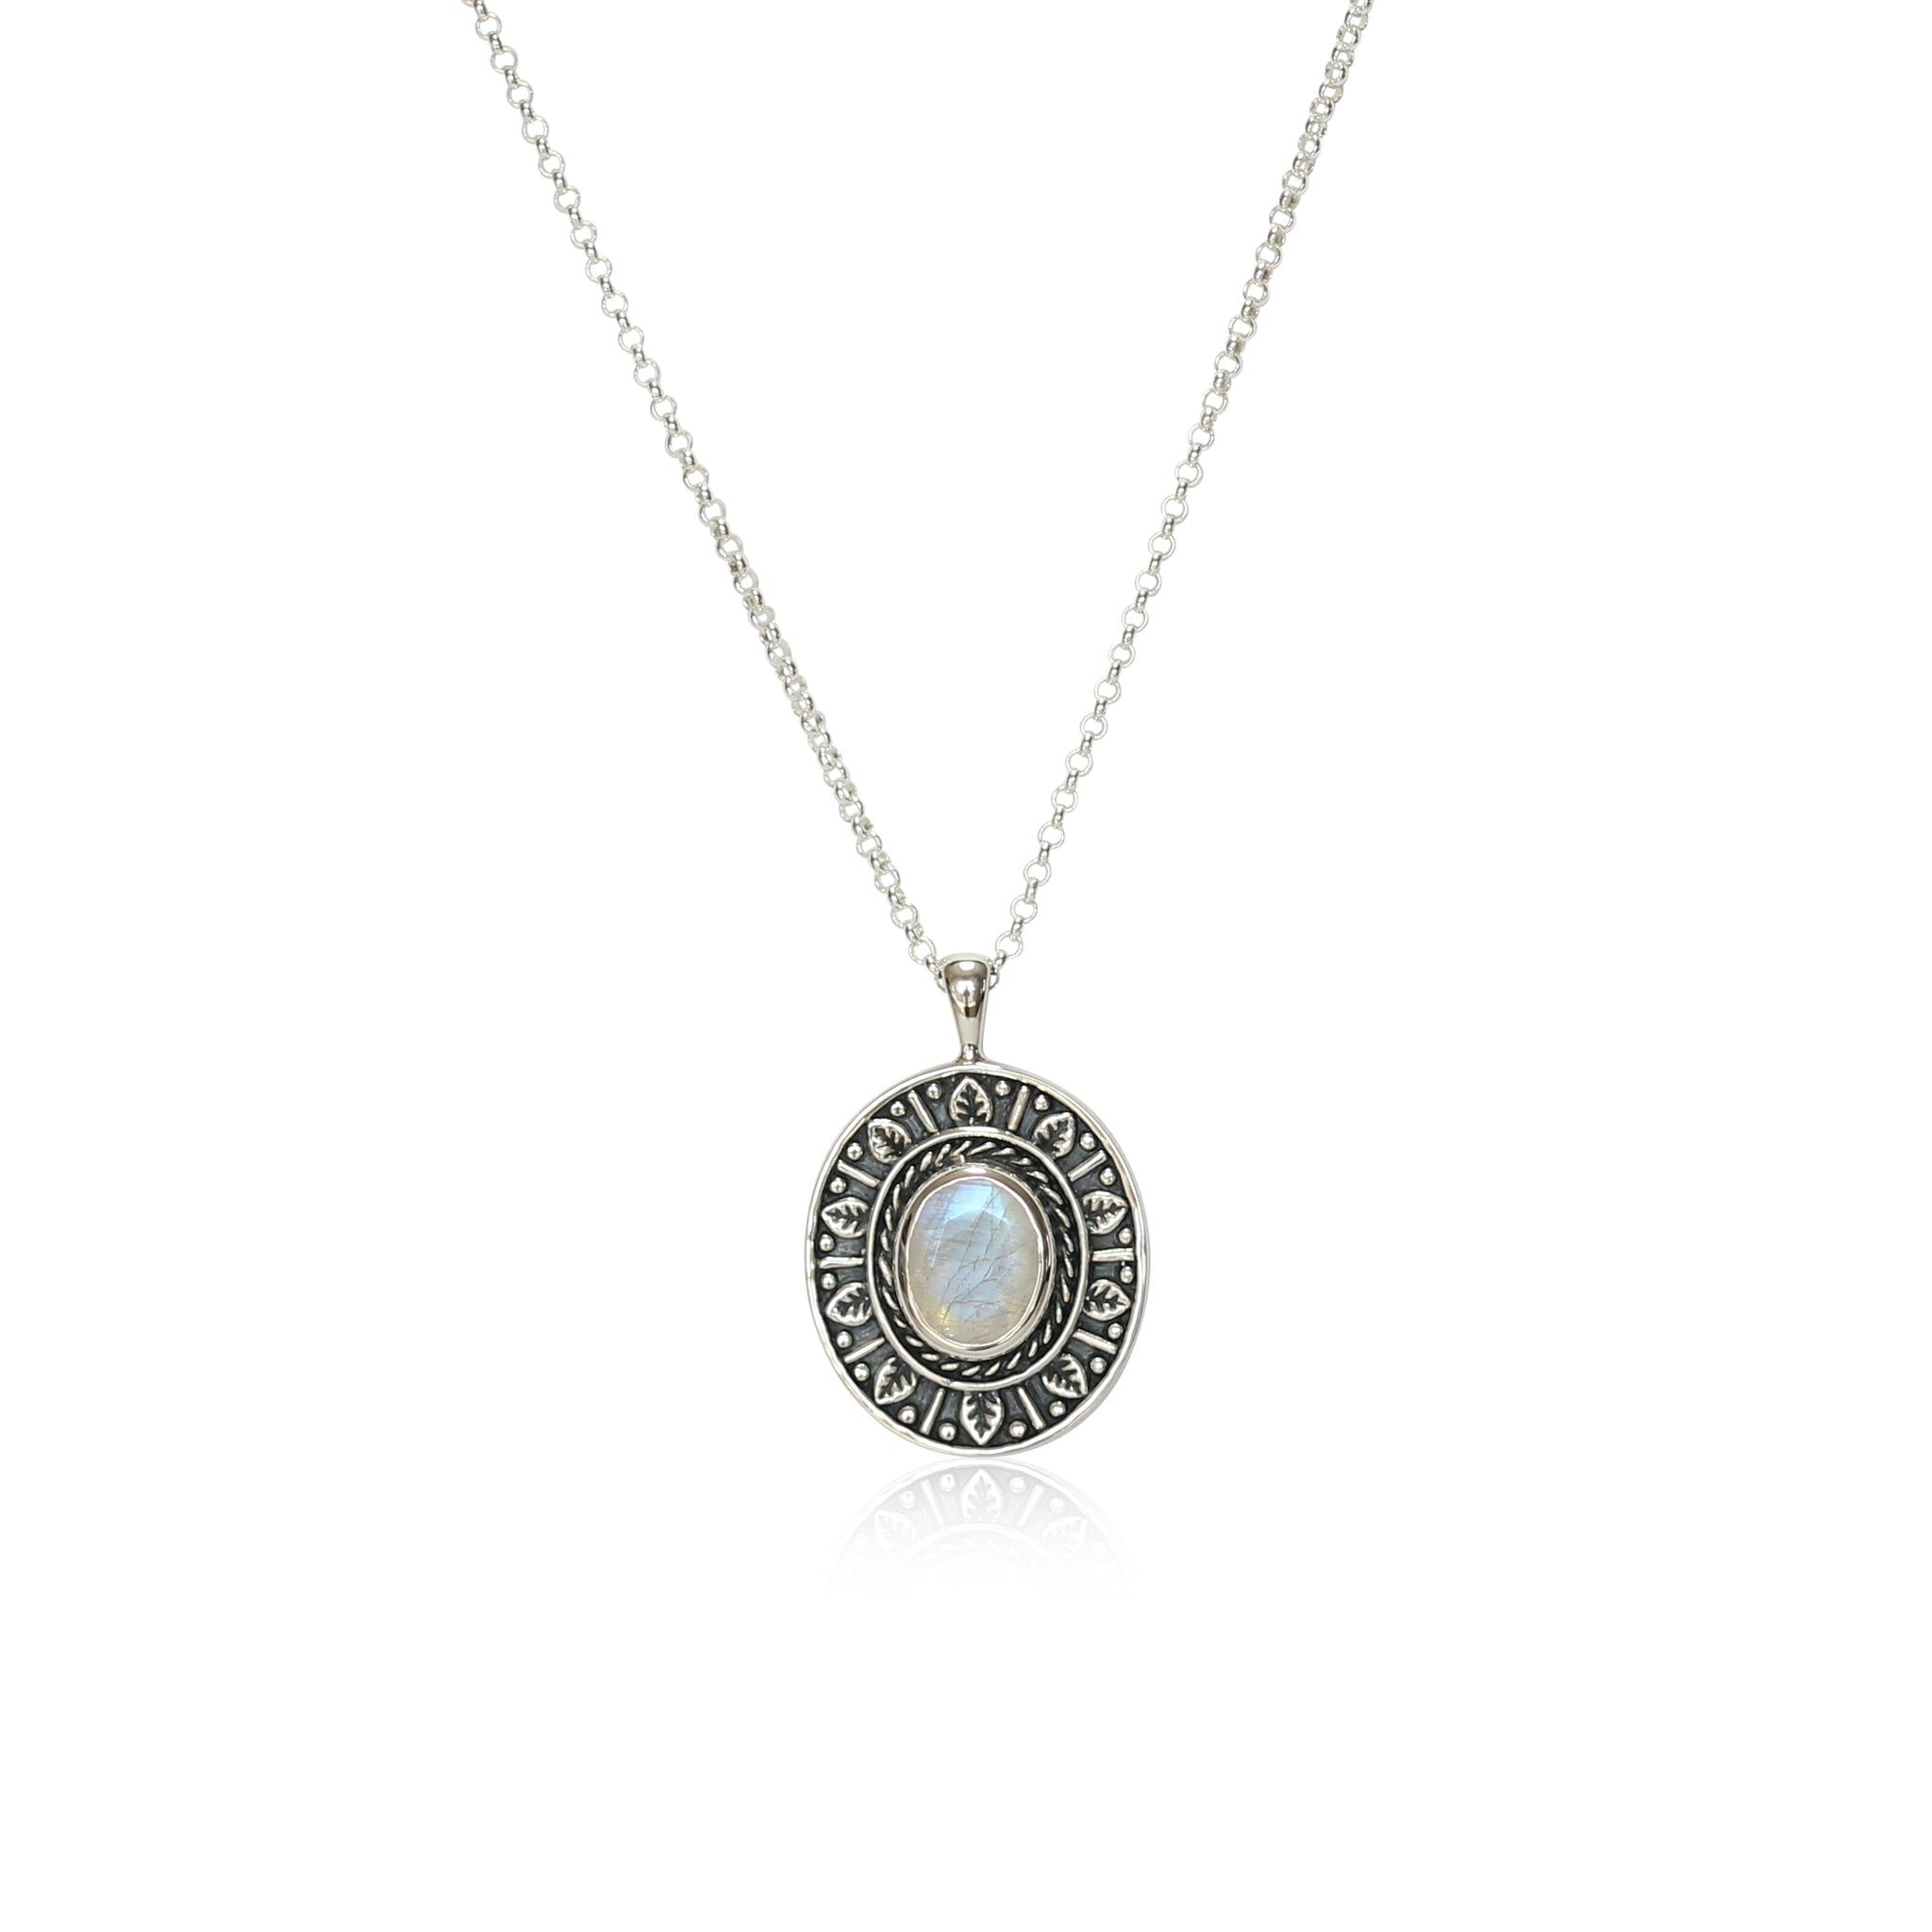 Moongate Necklace - Silver